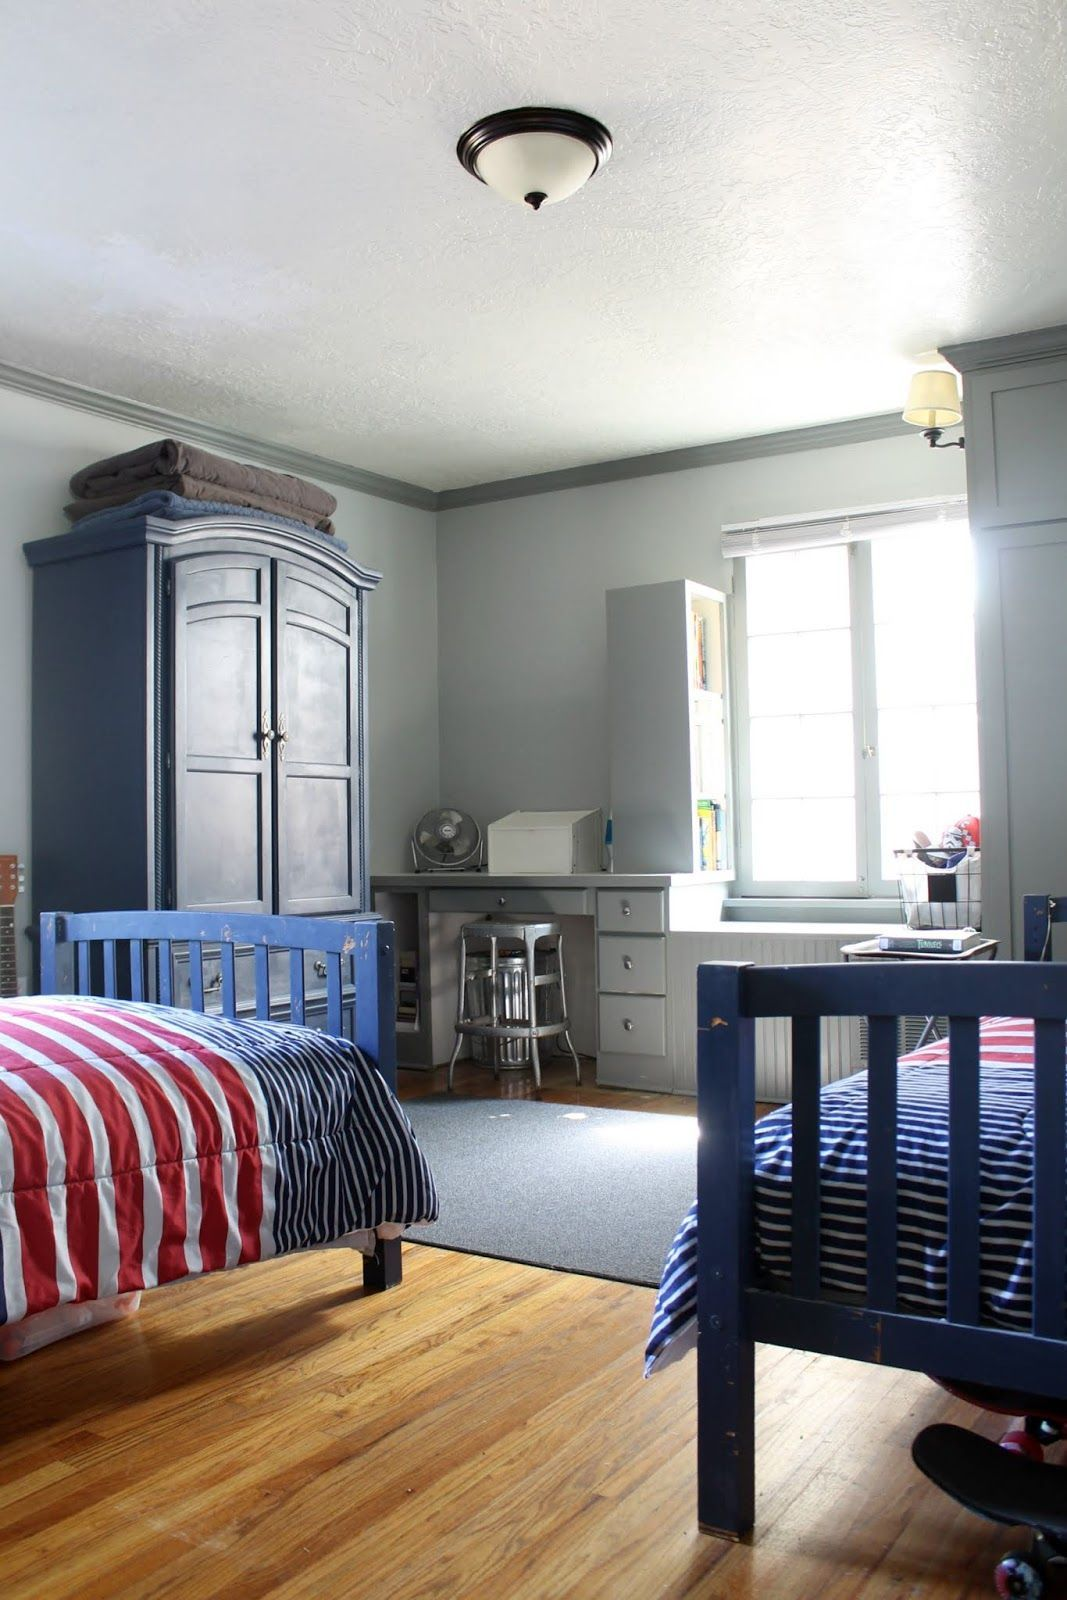 17 Nice Bedroom Paint Colors For Prepare New Year In 2019 Decorate Your With The Best Color Pattern And Enhancing Ideas